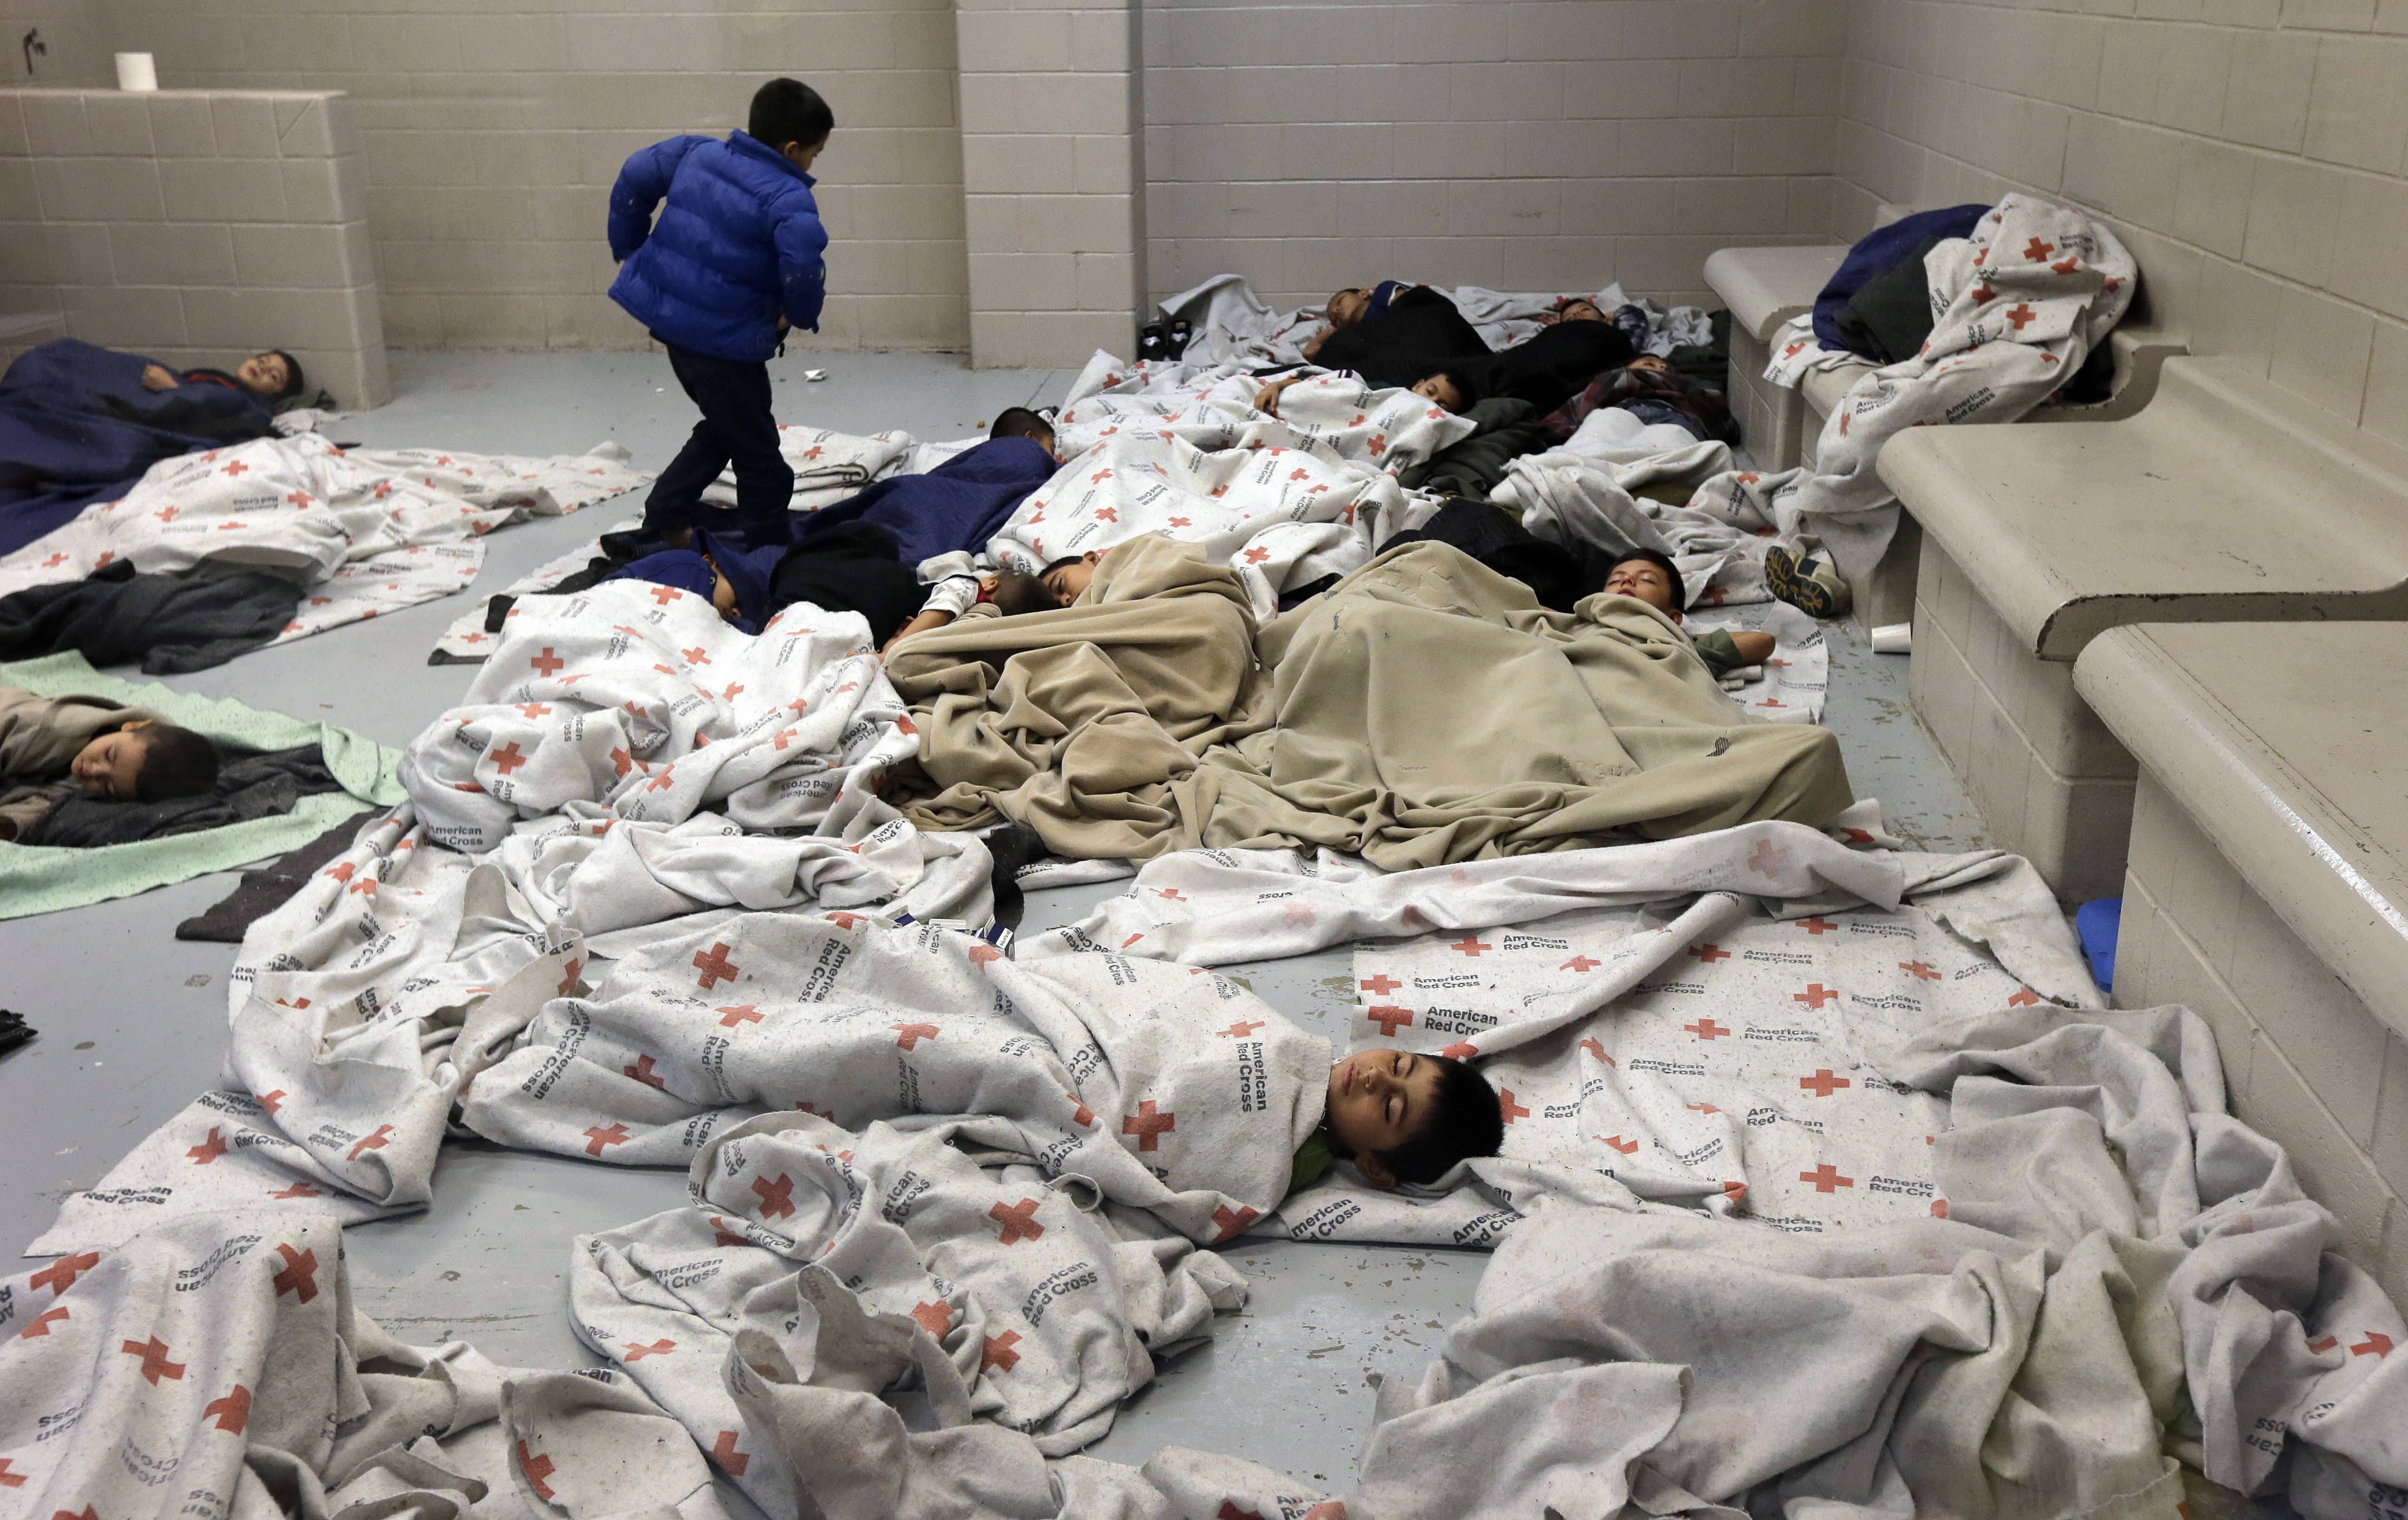 Detainees sleep in a holding cell at a U.S. Customs and Border Protection processing facility in Brownsville,Texas. For nearly two months, images of immigrant children who have crossed the border without a parent, only to wind up in concrete holding cells once in United States, have tugged at heartstrings. Yet most Americans now say U.S. law should be changed so they can be sent home quickly, without a deportation hearing.